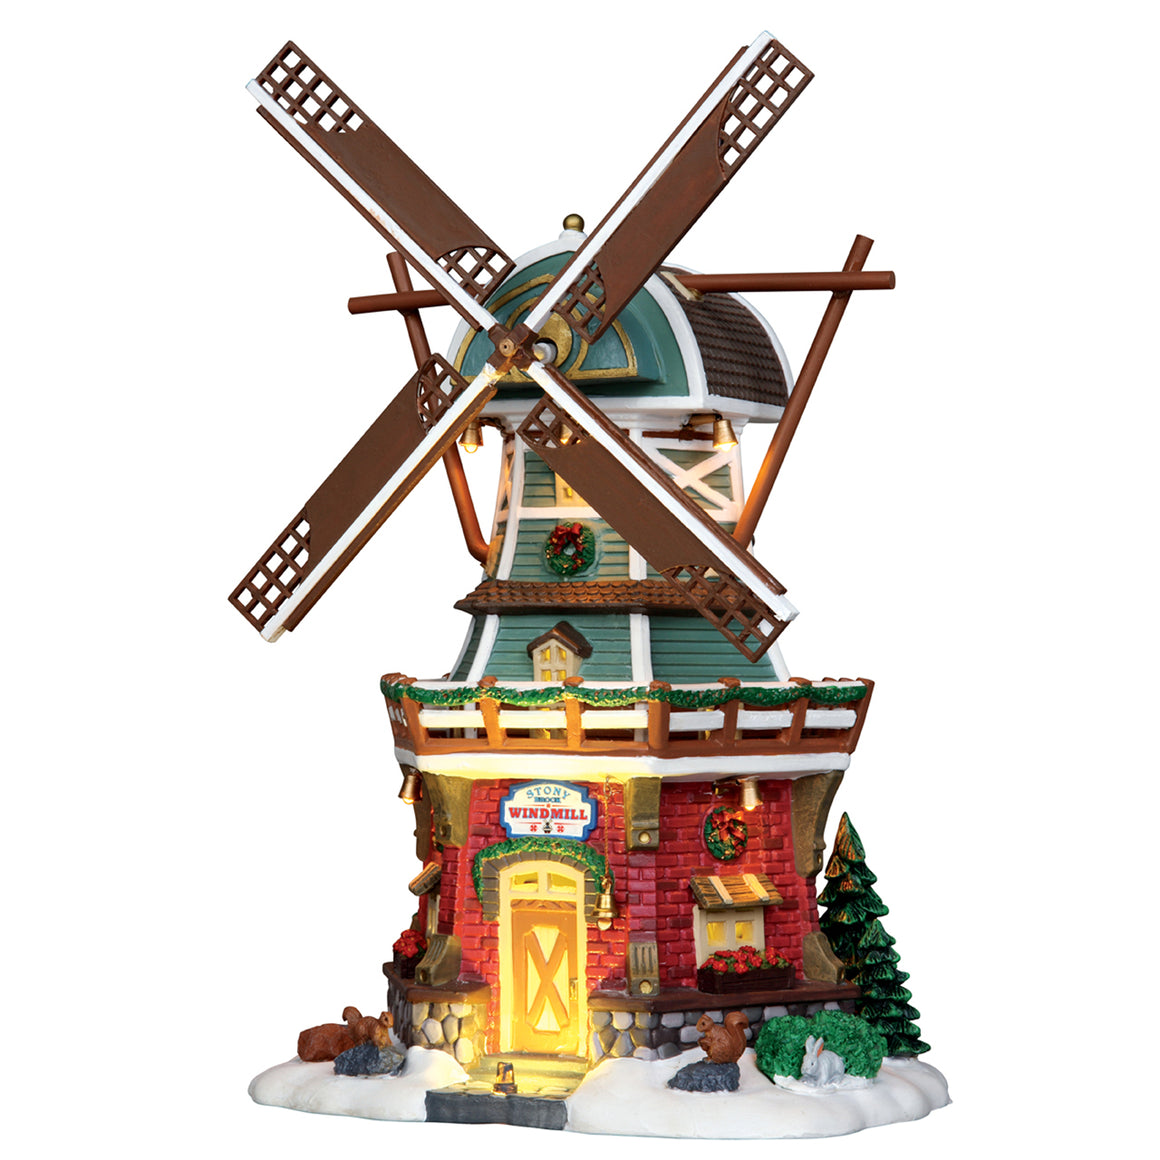 Lemax 25384 Stony Brook Windmill, Sights and Sound piece- Gift Spice